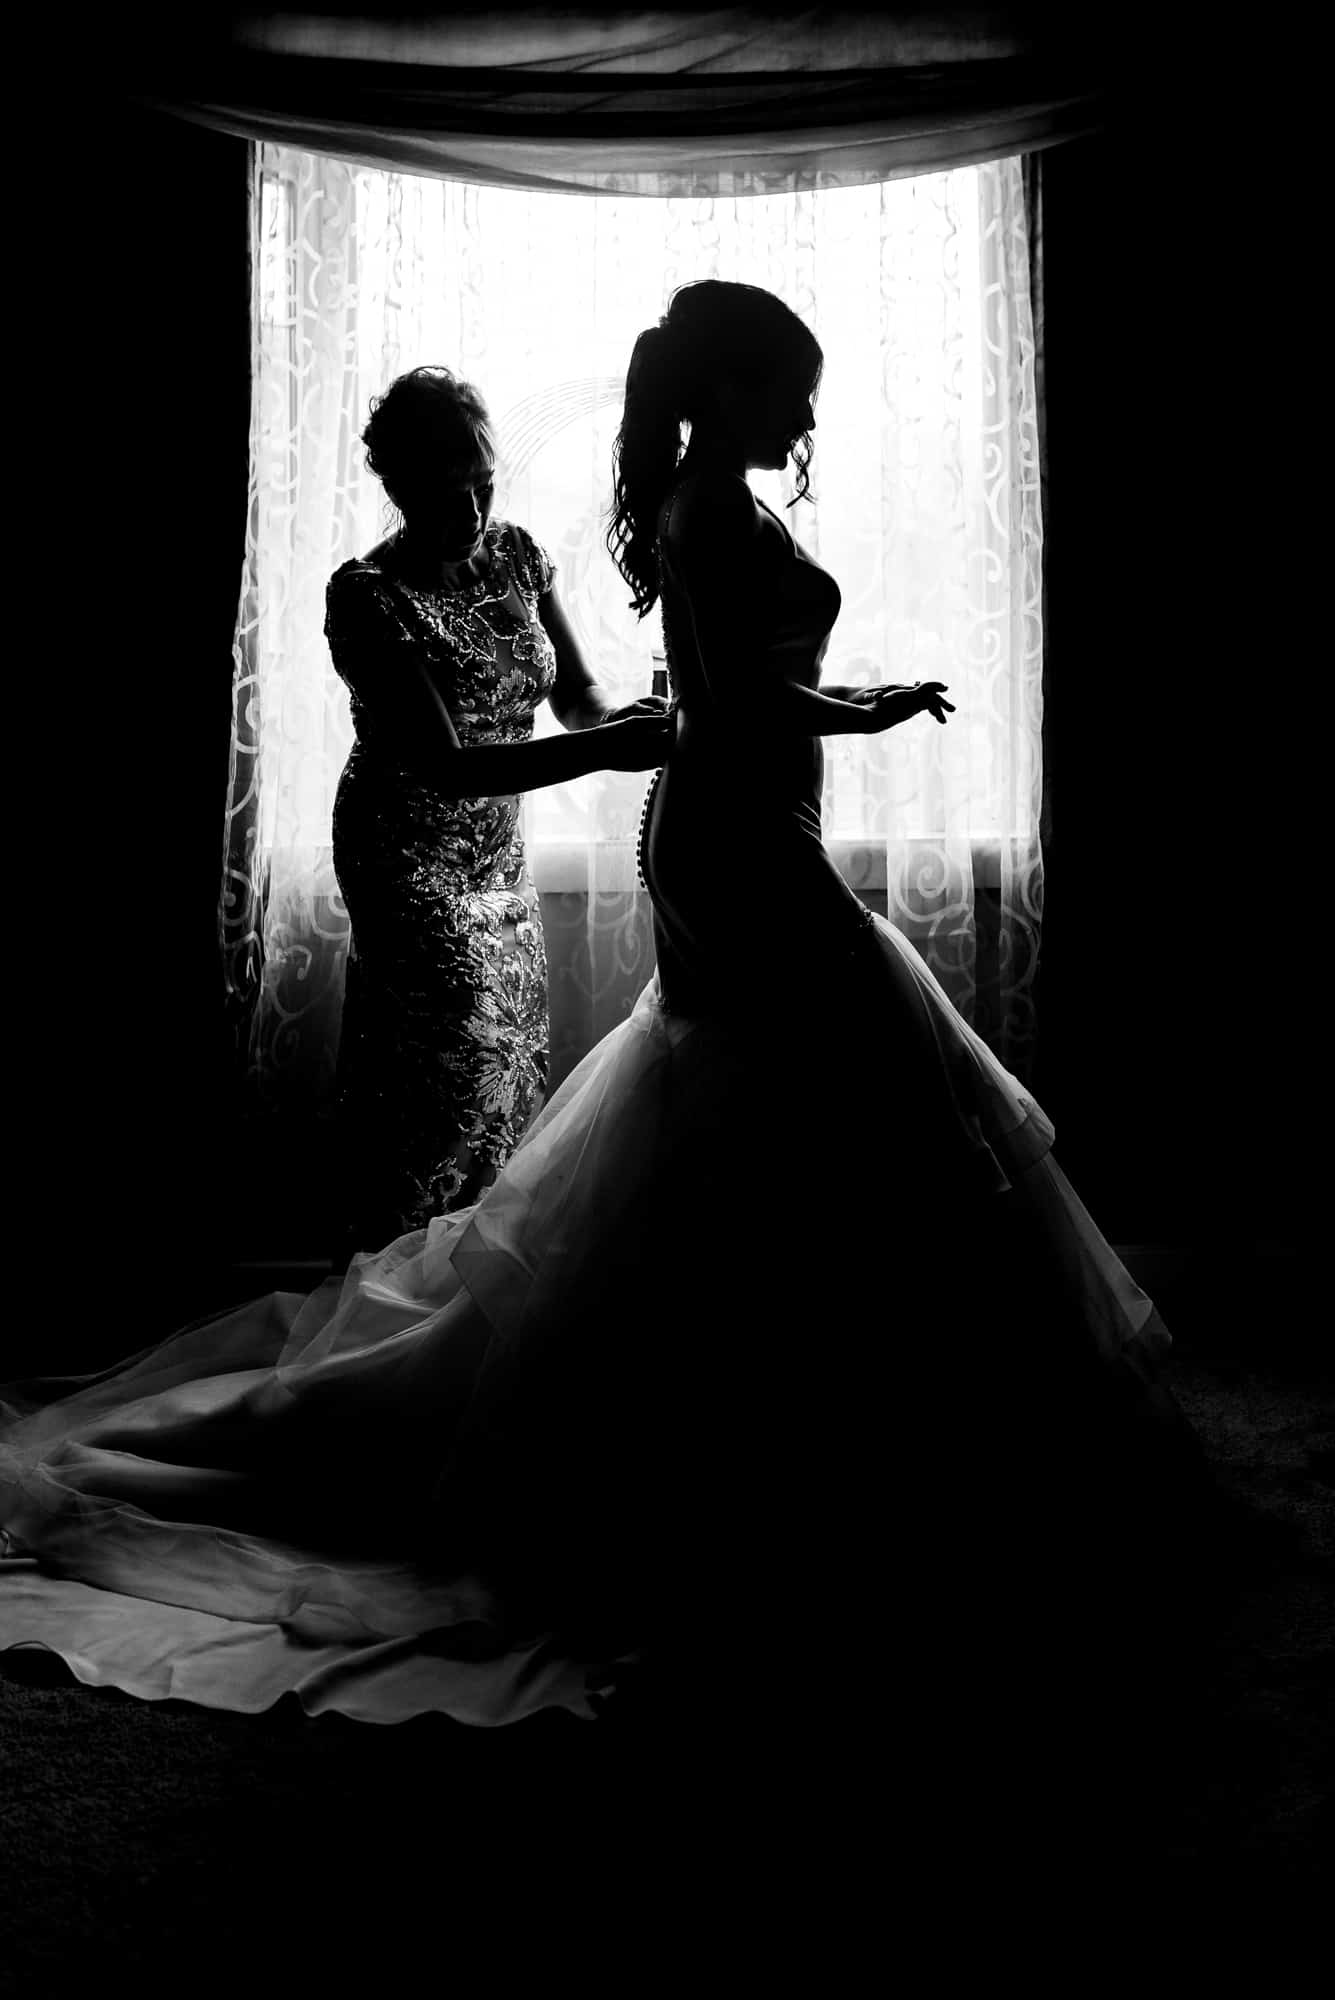 wedding morning, silhouette of mother helping bride get ready